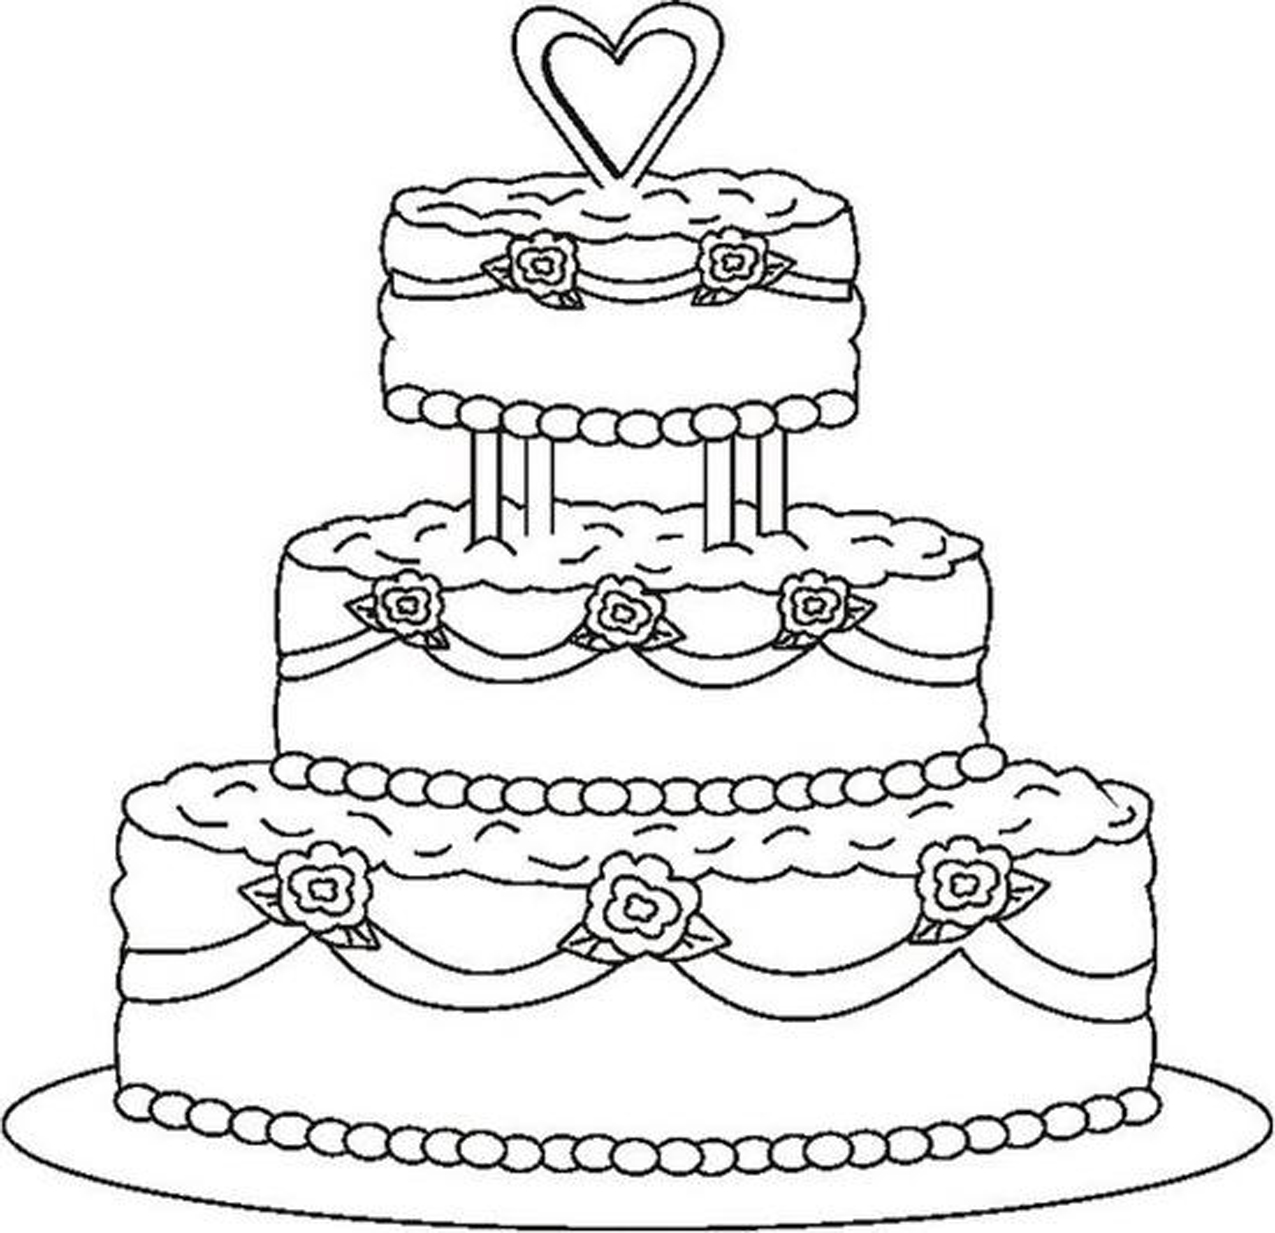 Cake Images For Colouring : Printable Wedding Cake Coloring Pages Cooloring.com